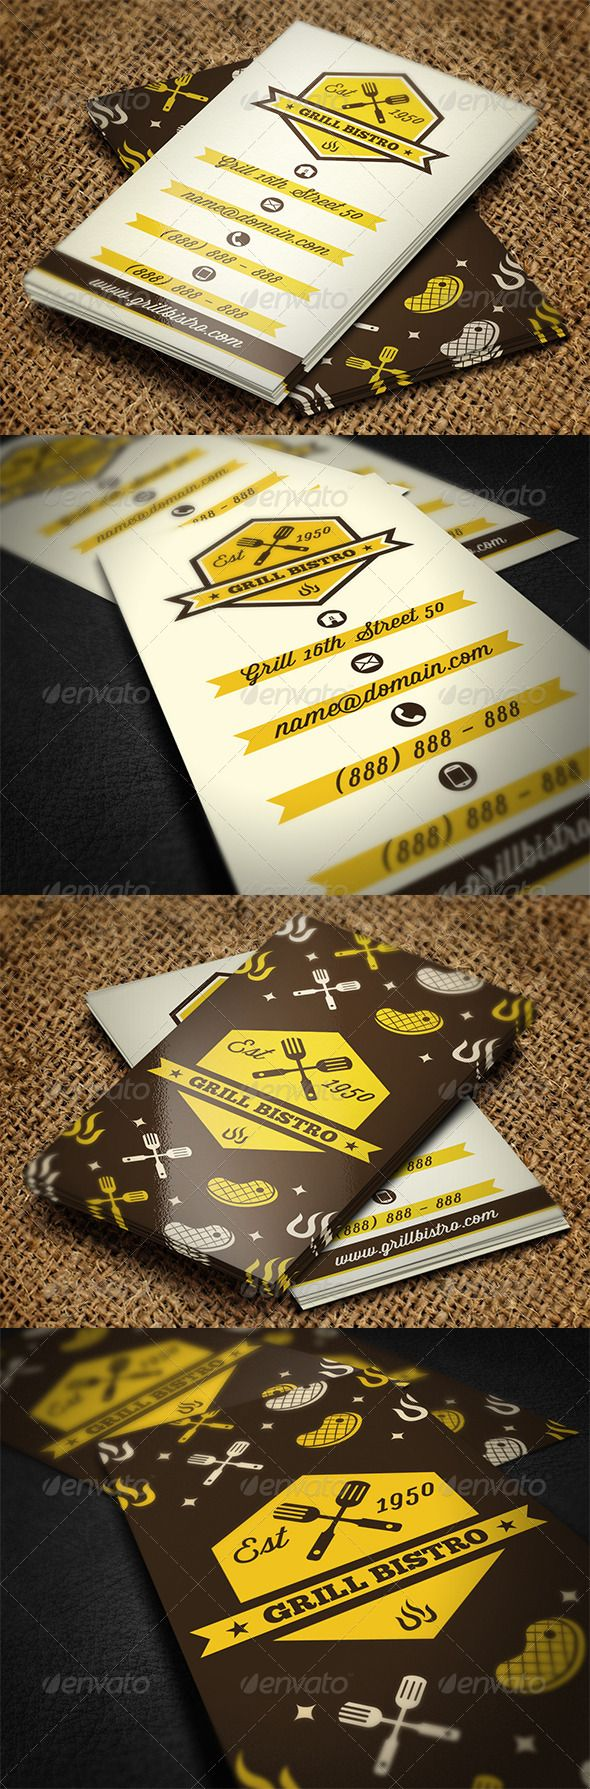 135 best Business card design images on Pinterest | Business card ...